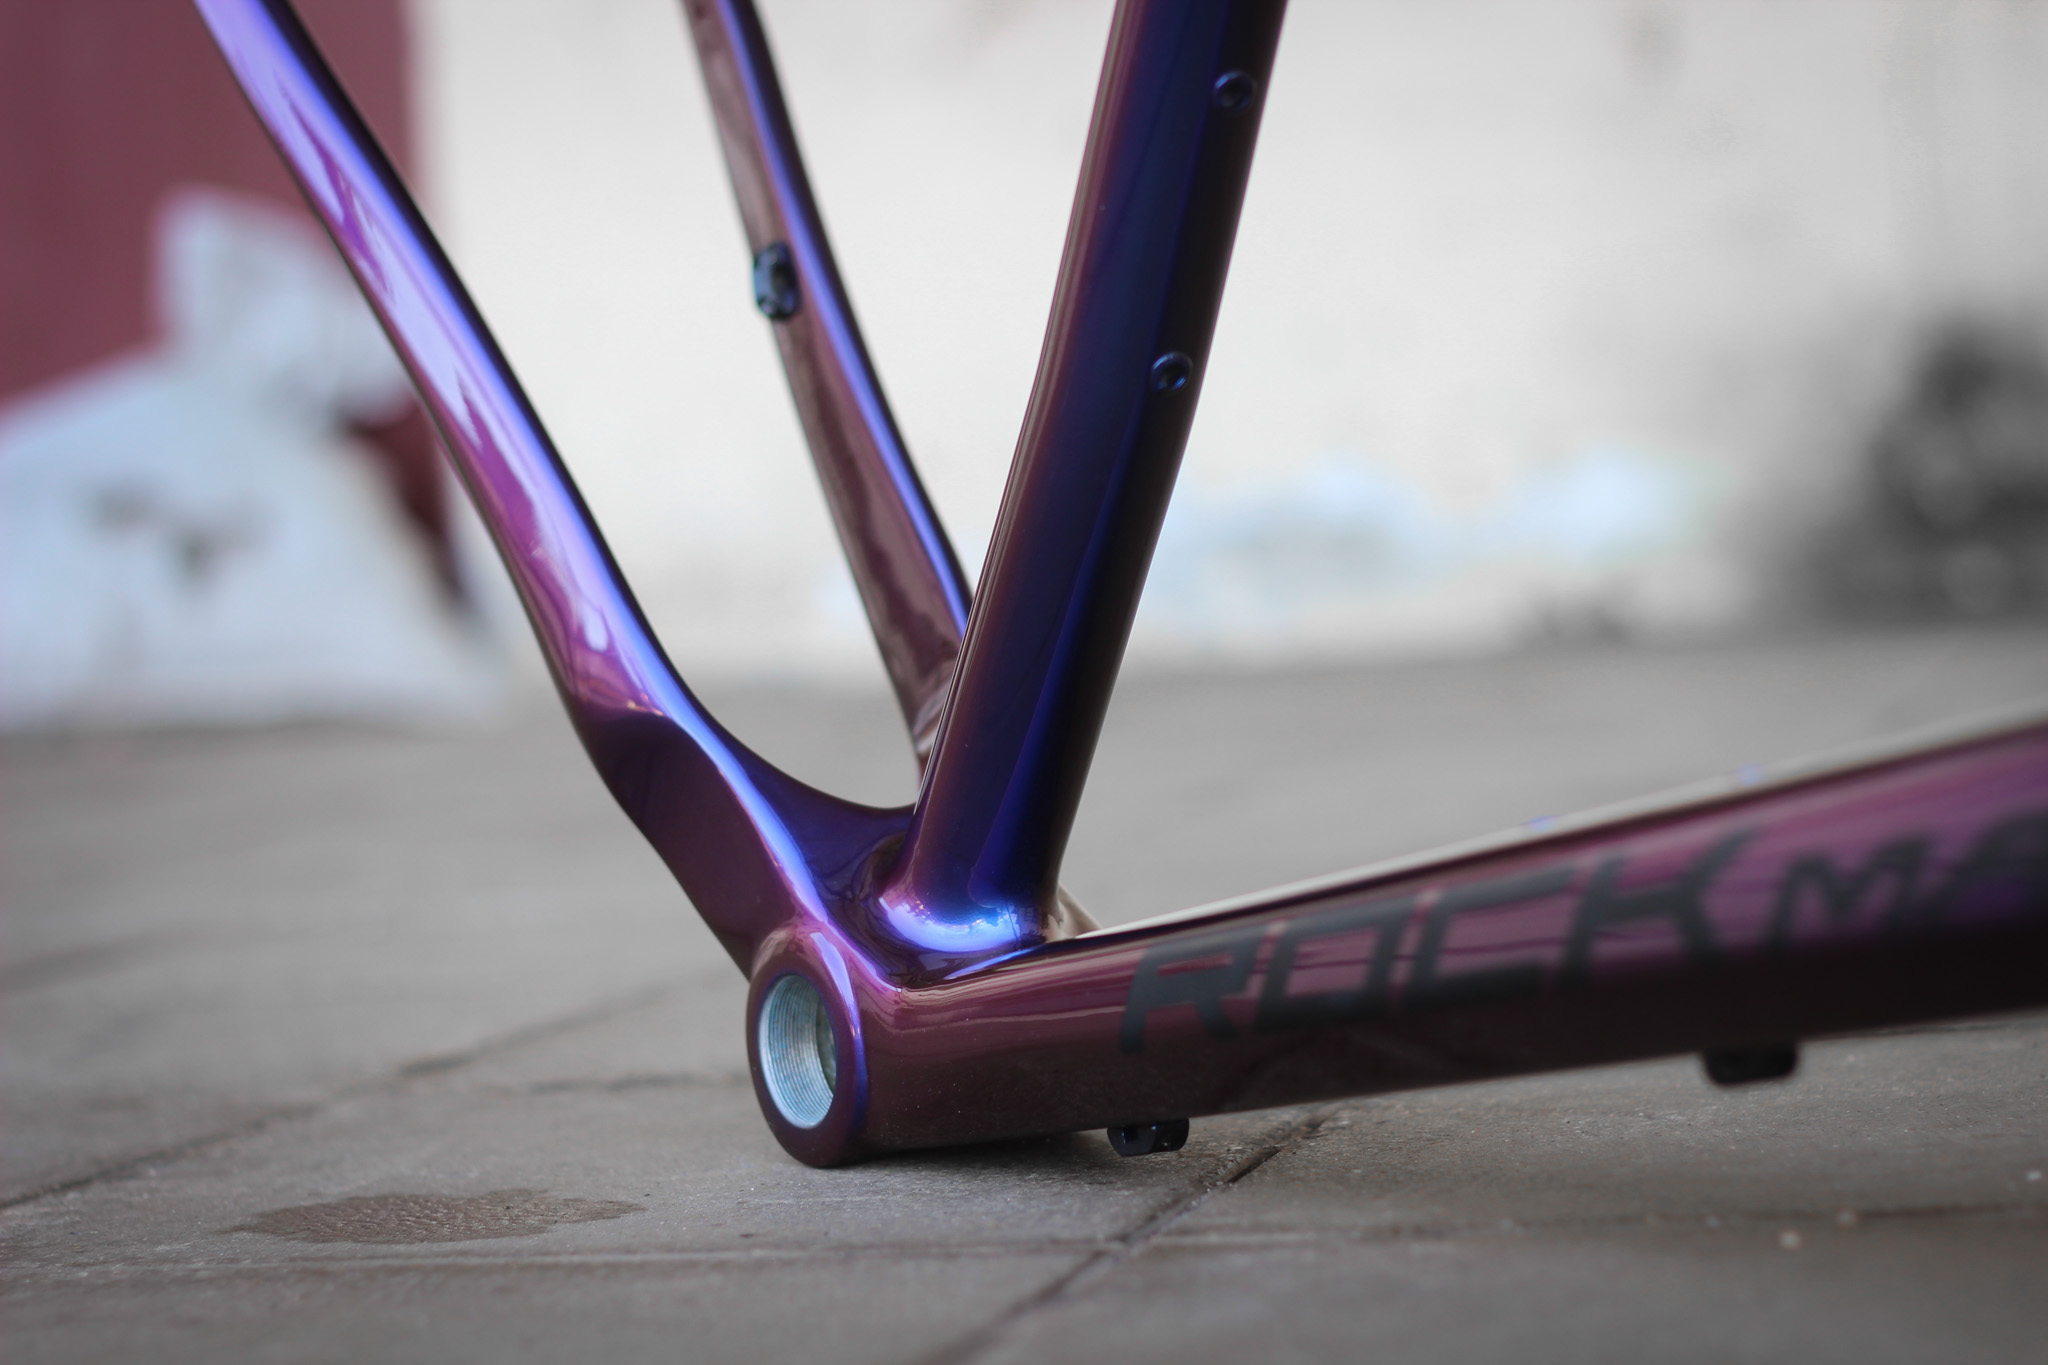 How To Repaint Carbon Frame To A New Chameleon Color